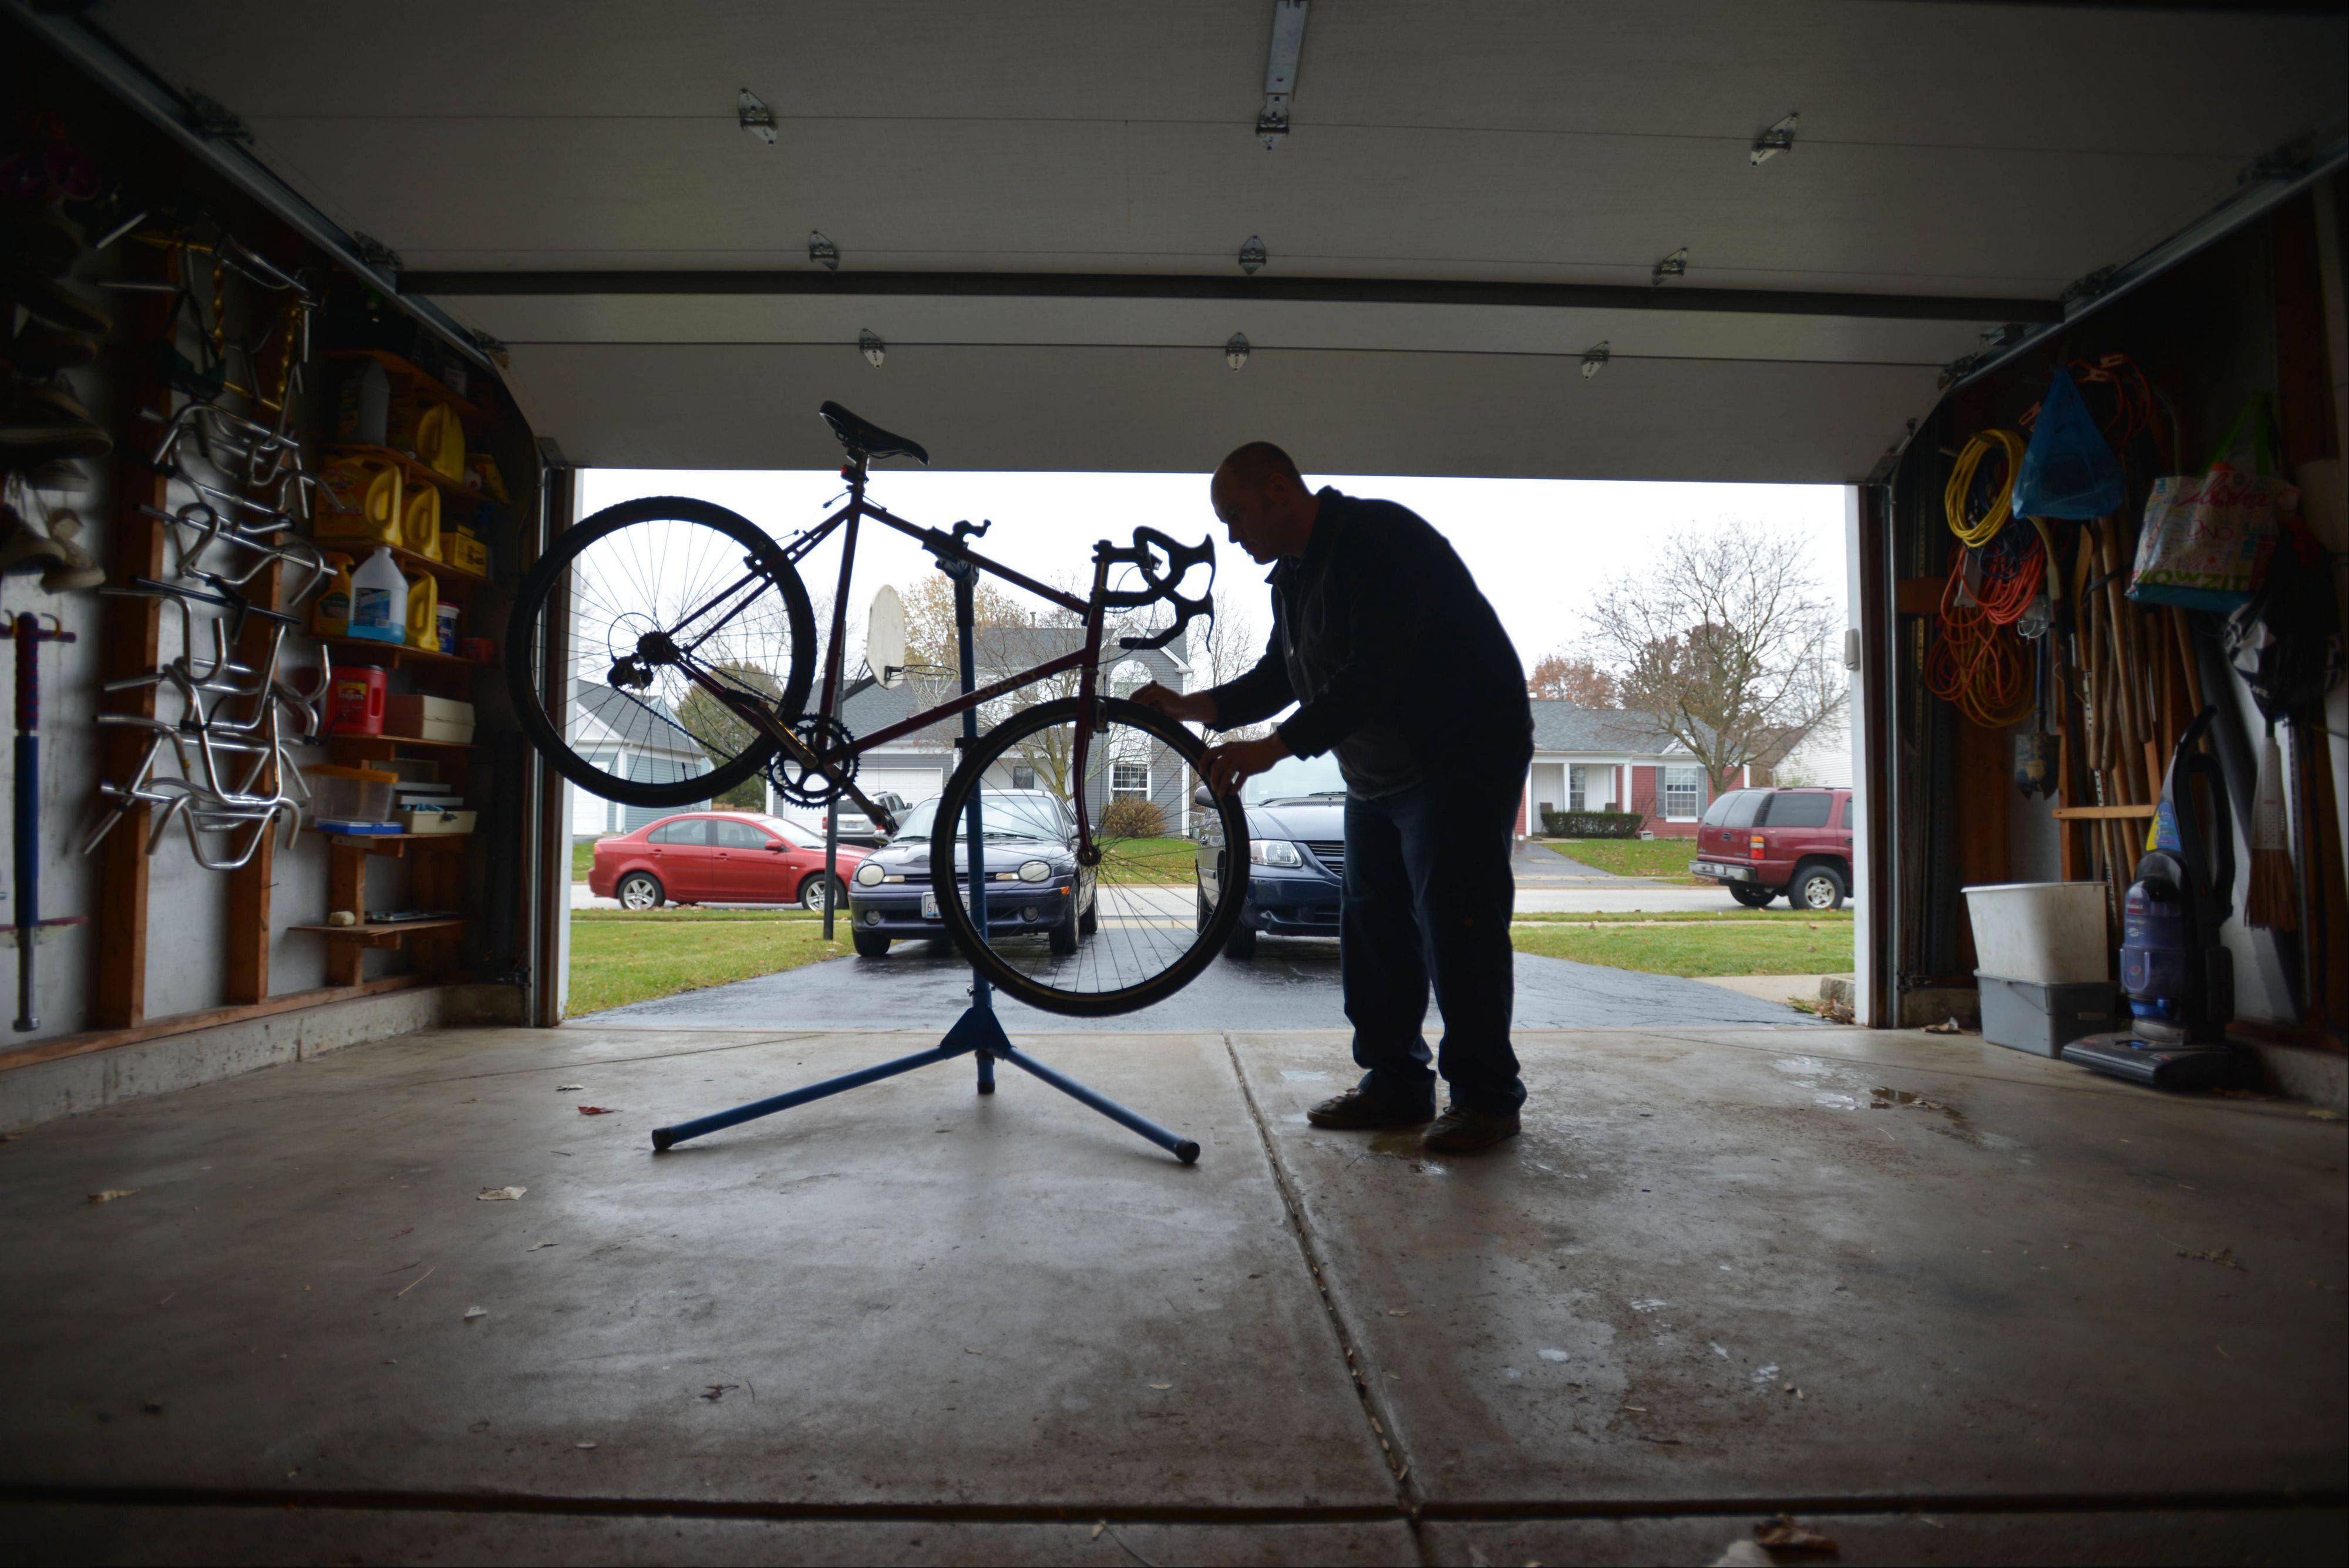 Brian Wroblewski of Aurora works on one of the six bikes in his garage Saturday afternoon. He was going to go for a ride, but it was raining. So that prompted him to do some maintenance.